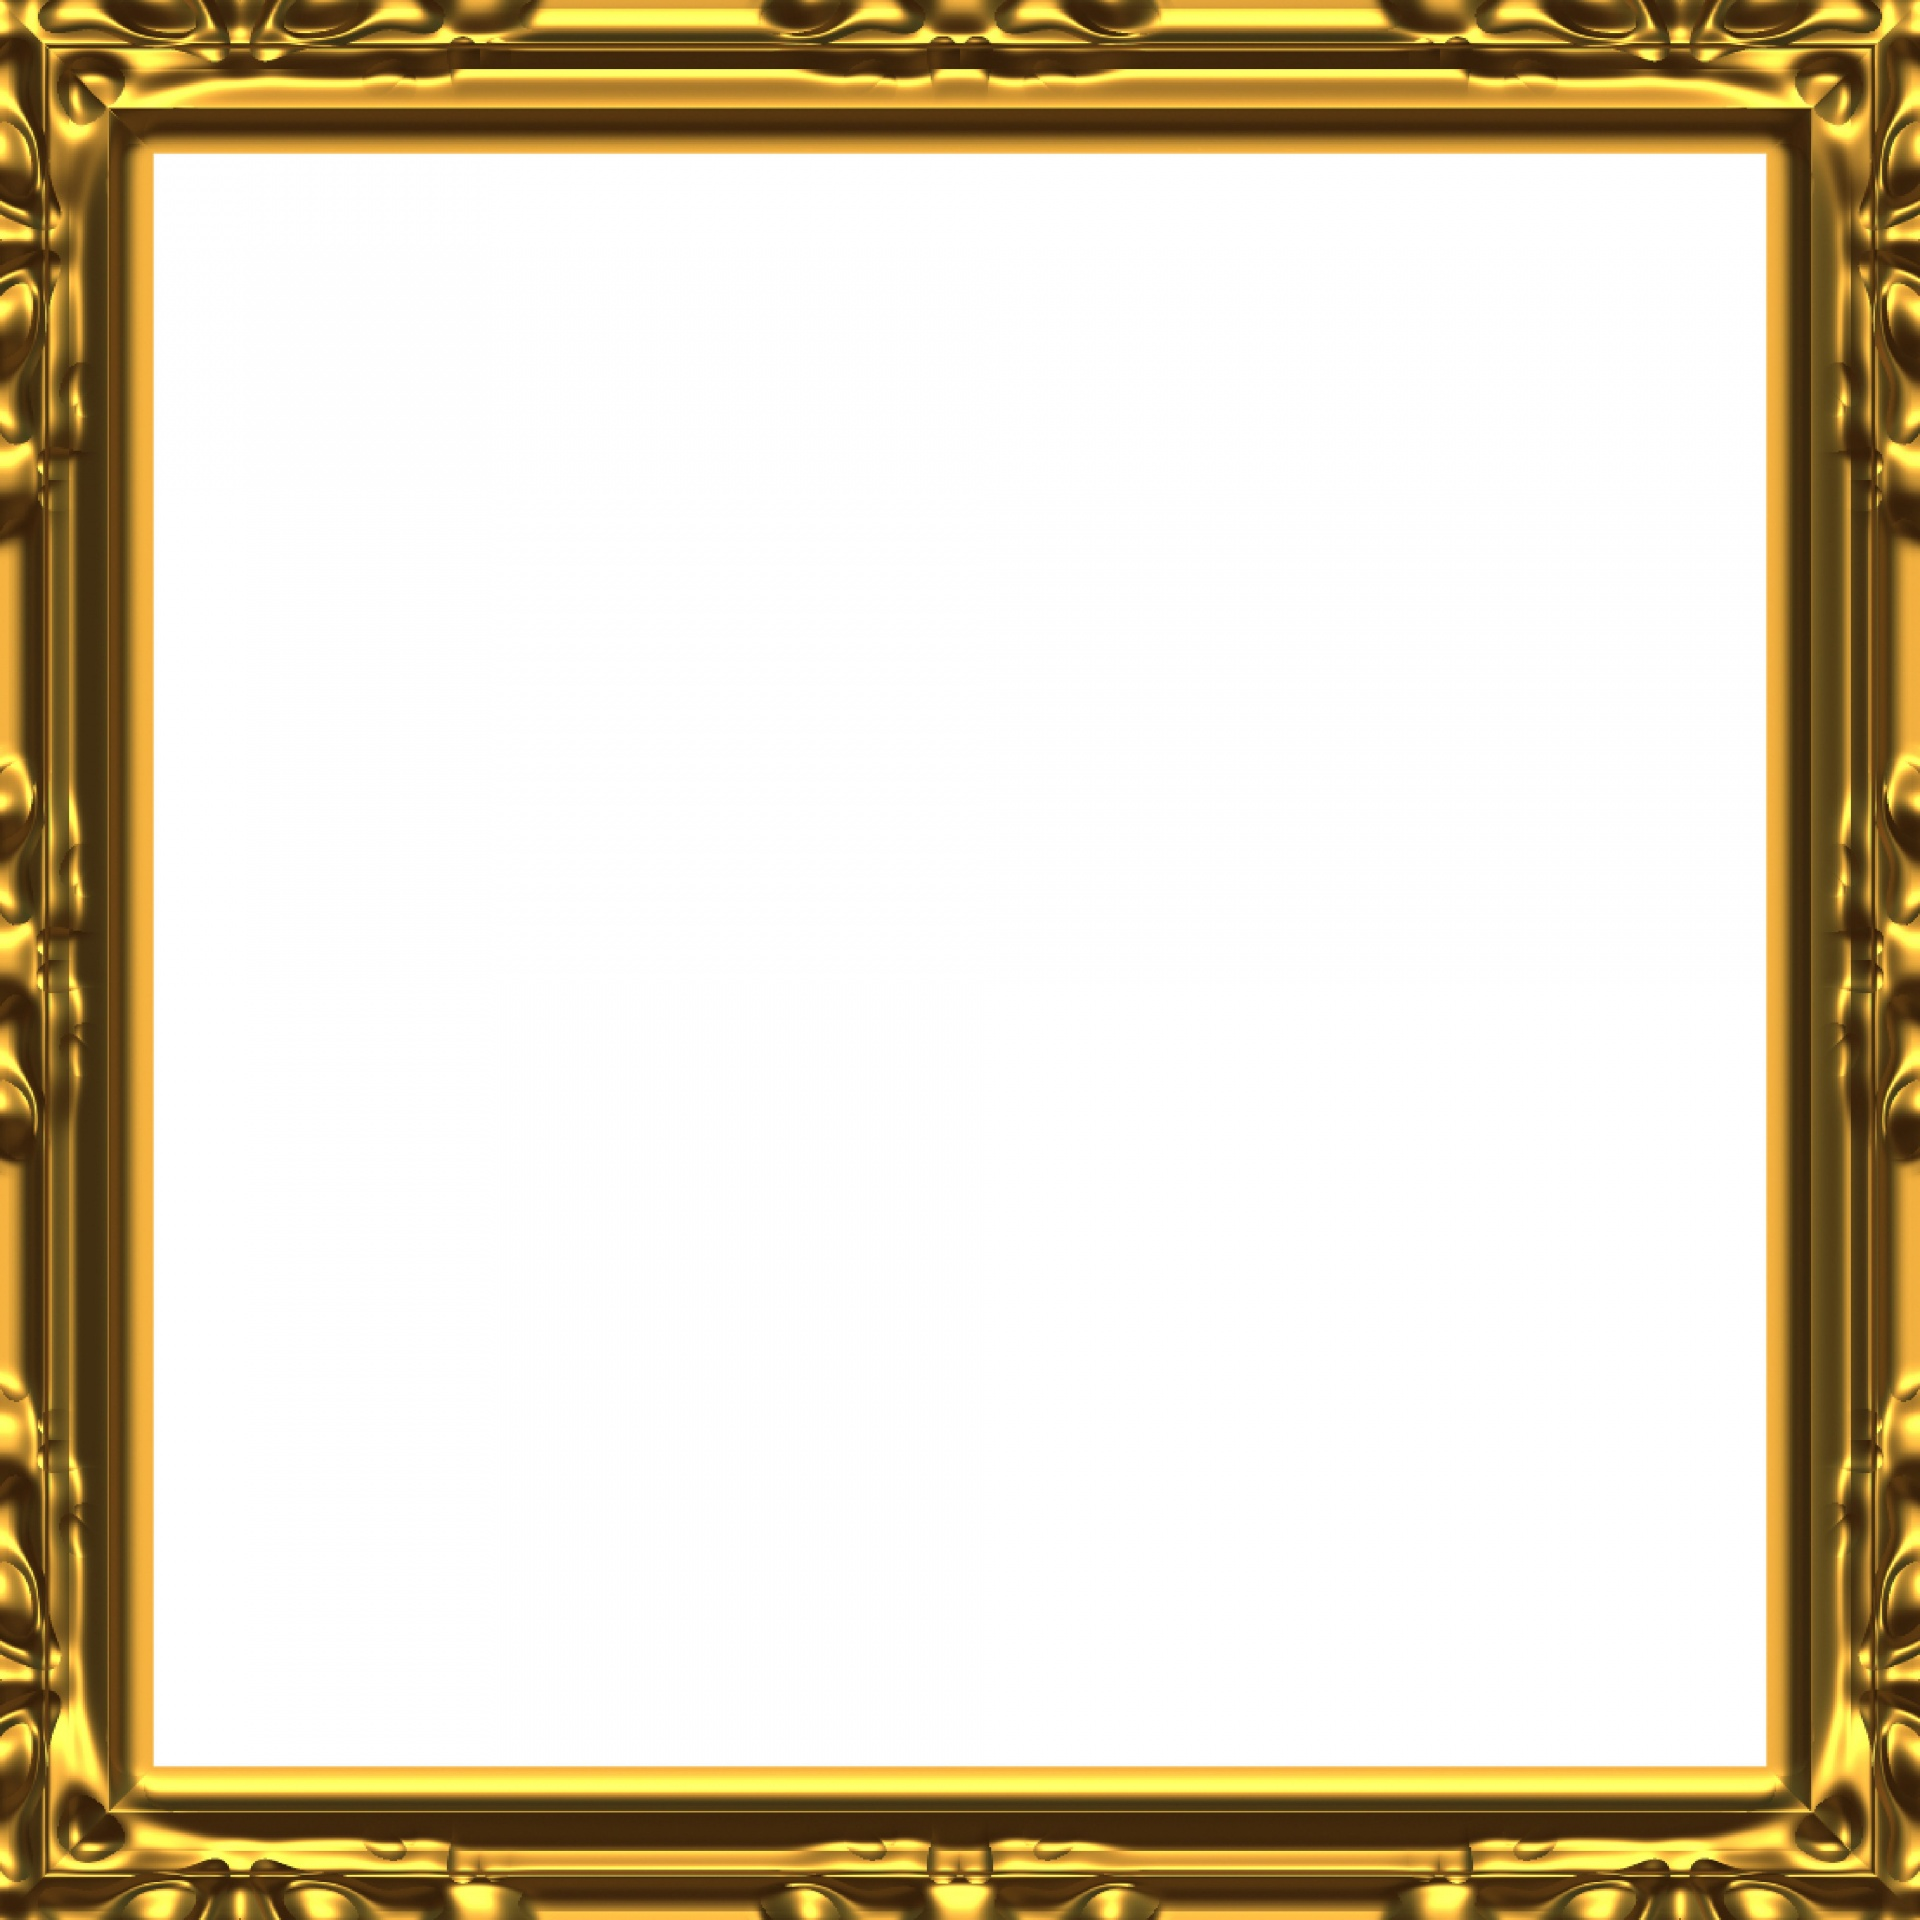 Baroque Golden Frame Free Stock Photo - Public Domain Pictures